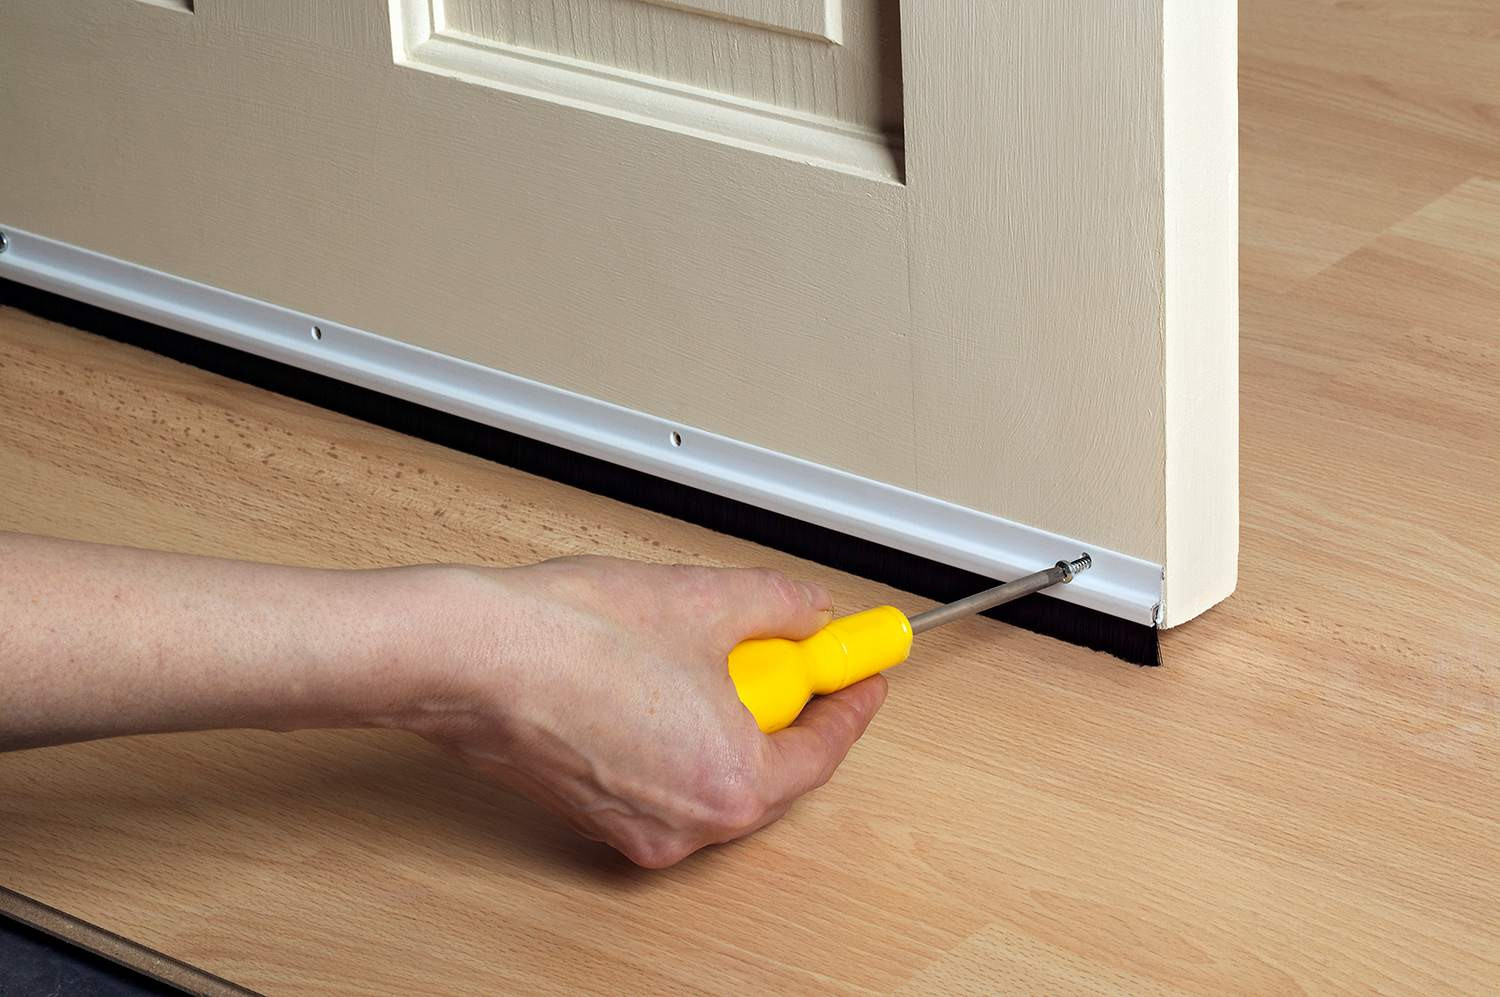 hardwood floor repair new orleans of 10 ways to bug proof your home regarding man screwing brush seal to edge of door